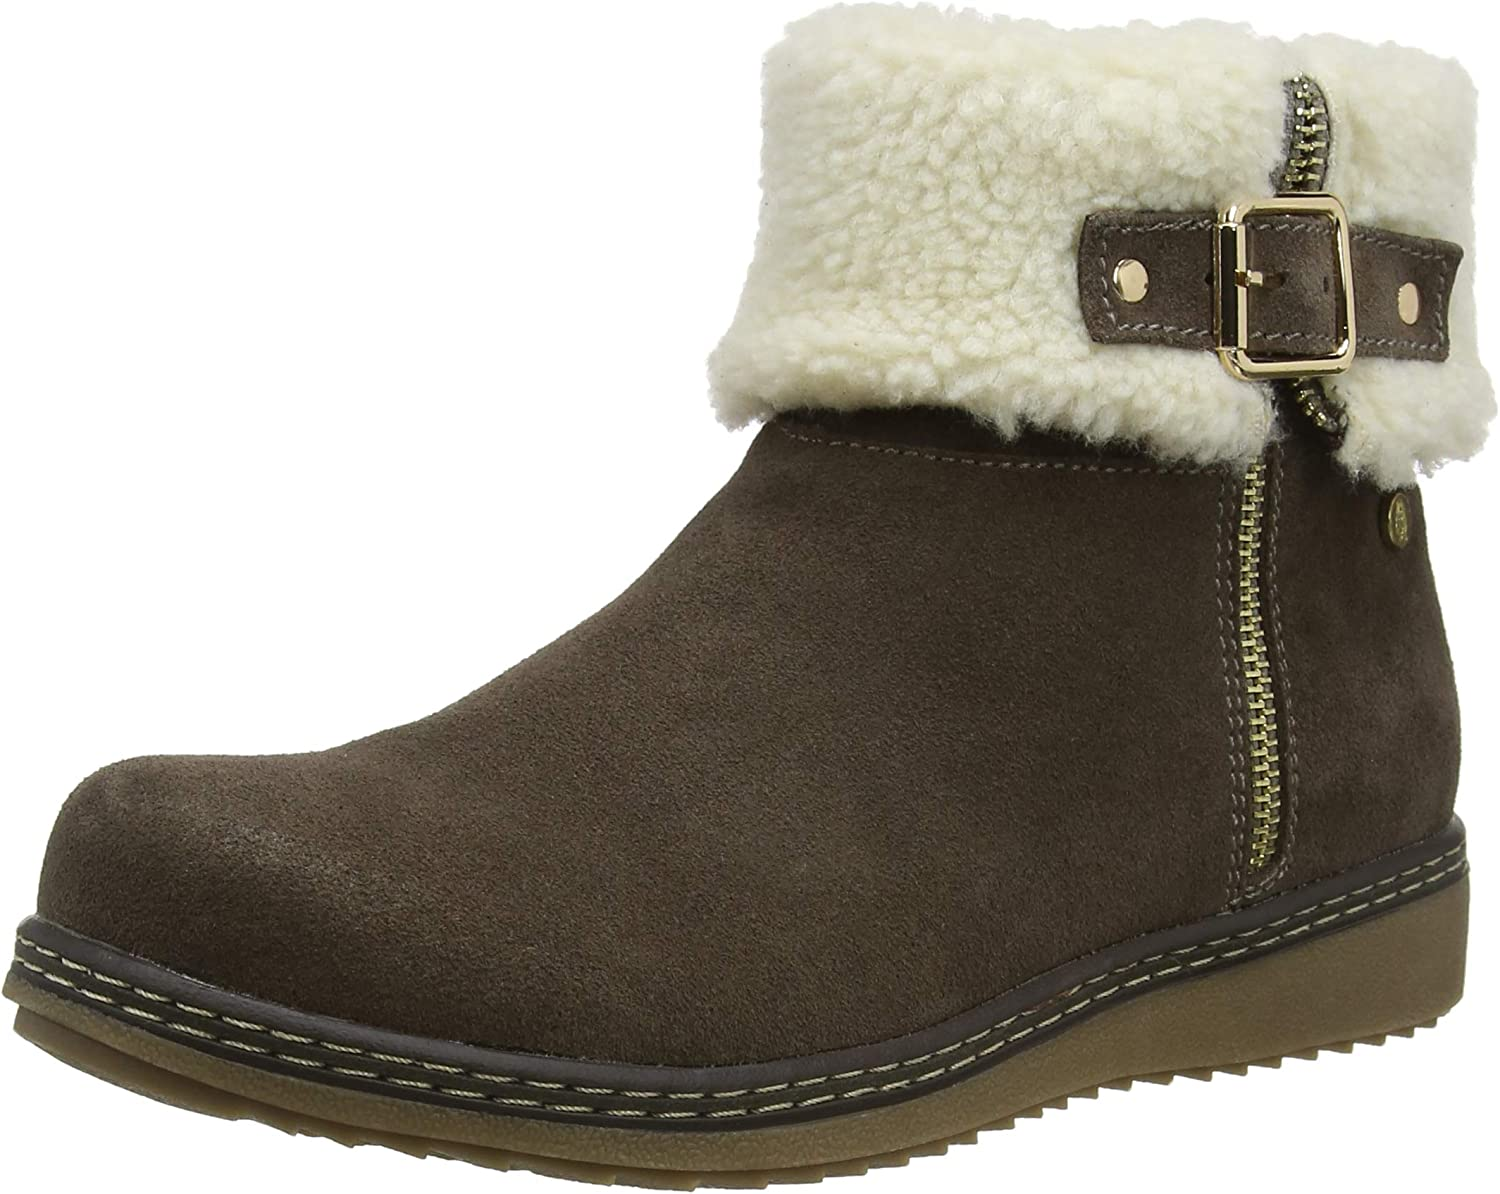 Hush Puppies Womens Maltese Collar Boot Grey Size UK 4 EU 37